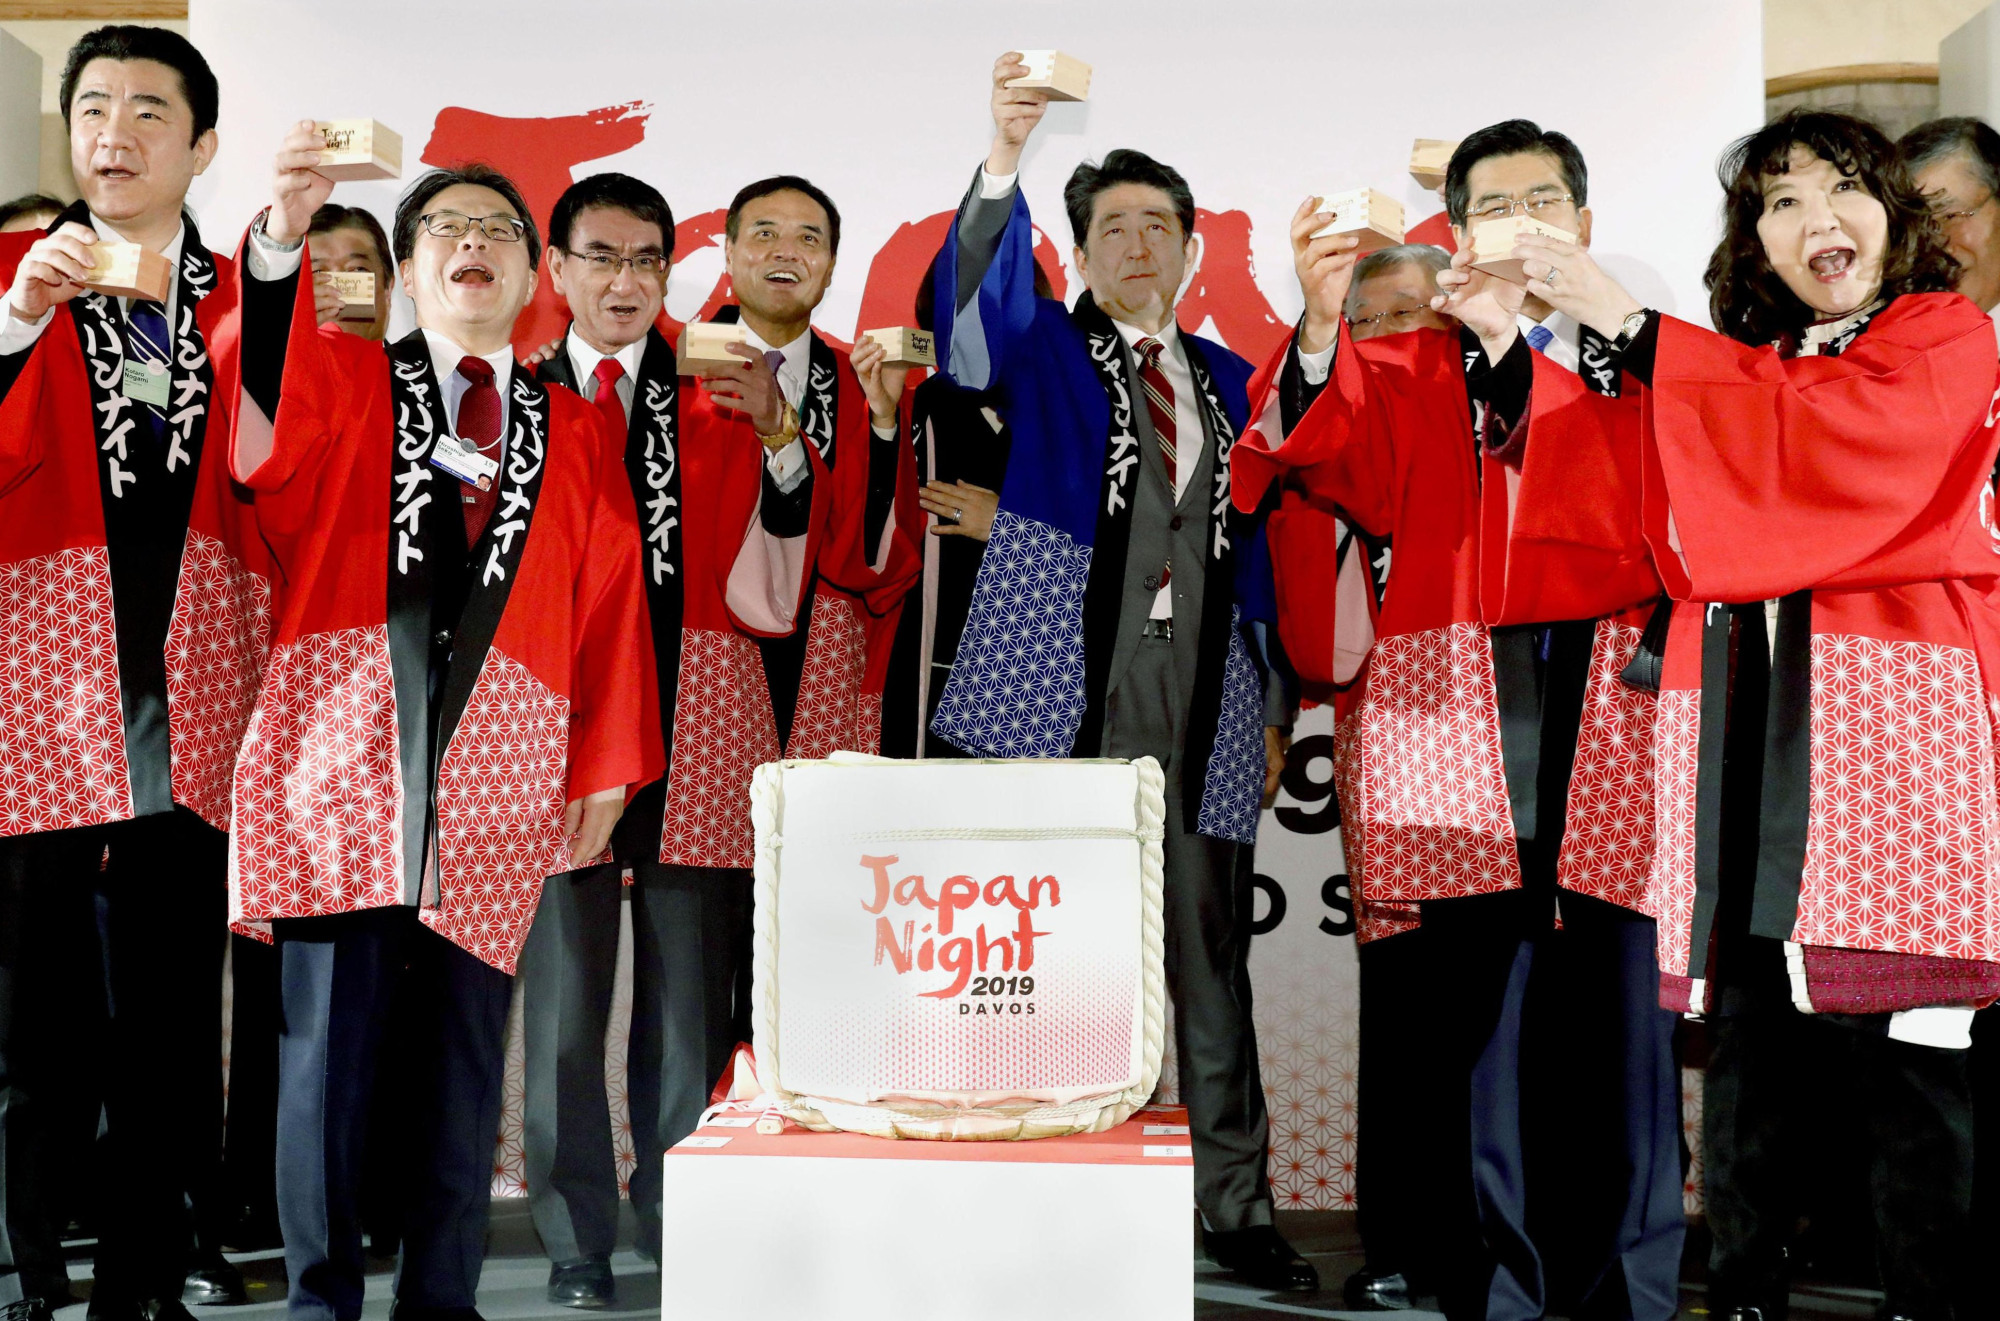 Prime Minister Shinzo Abe and other Japanese officials toast with sake produced in Fukushima Prefecture during the Japan Night event in Davos, Switzerland, on Wednesday. | KYODO